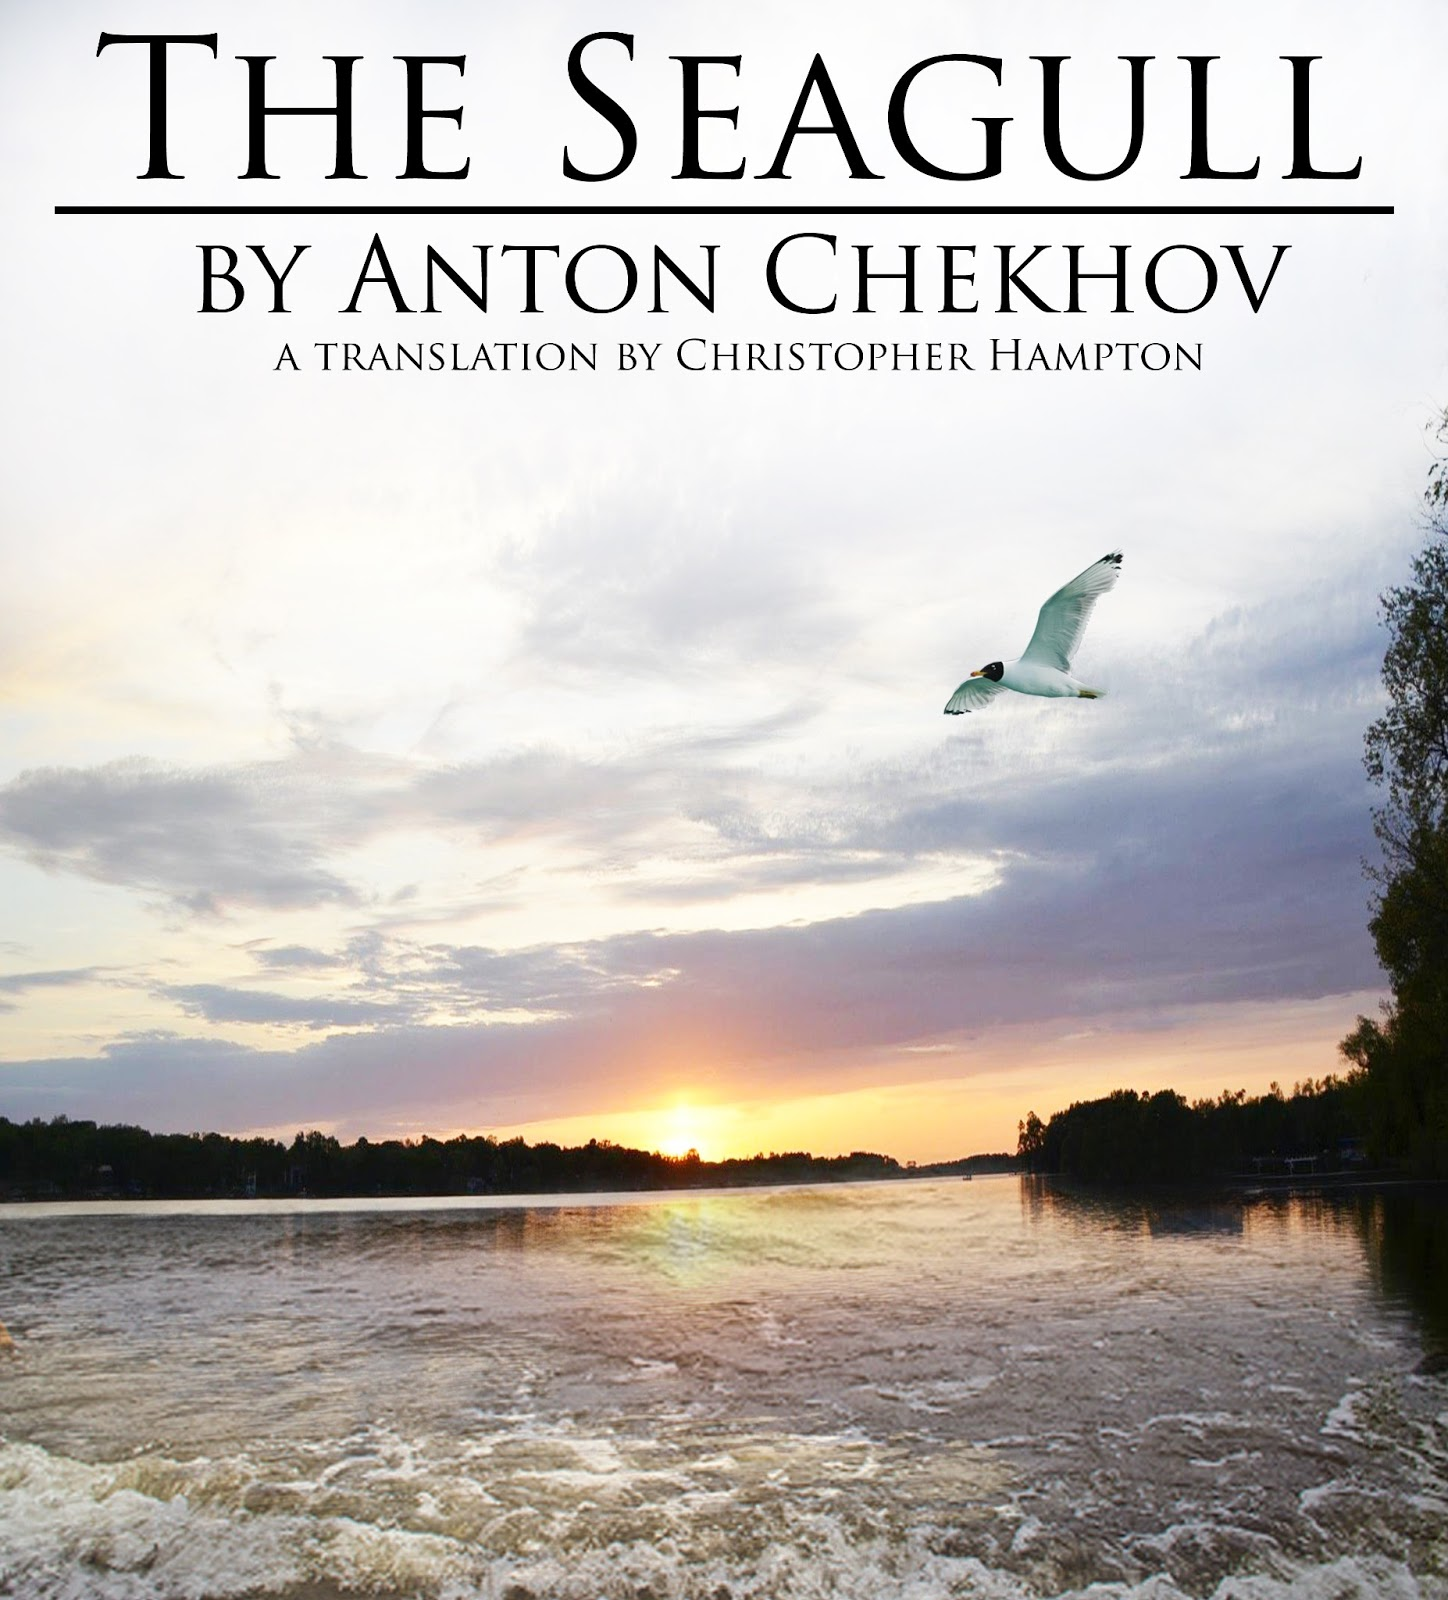 multi dimensionality in the seagull by anton The seagull proves that classic theatre does not always translate well to the modern cinema despite a stellar cast and an attempt to remain faithful to the original script, this translation of the russian stage production struggles to catch the imagination of this era.